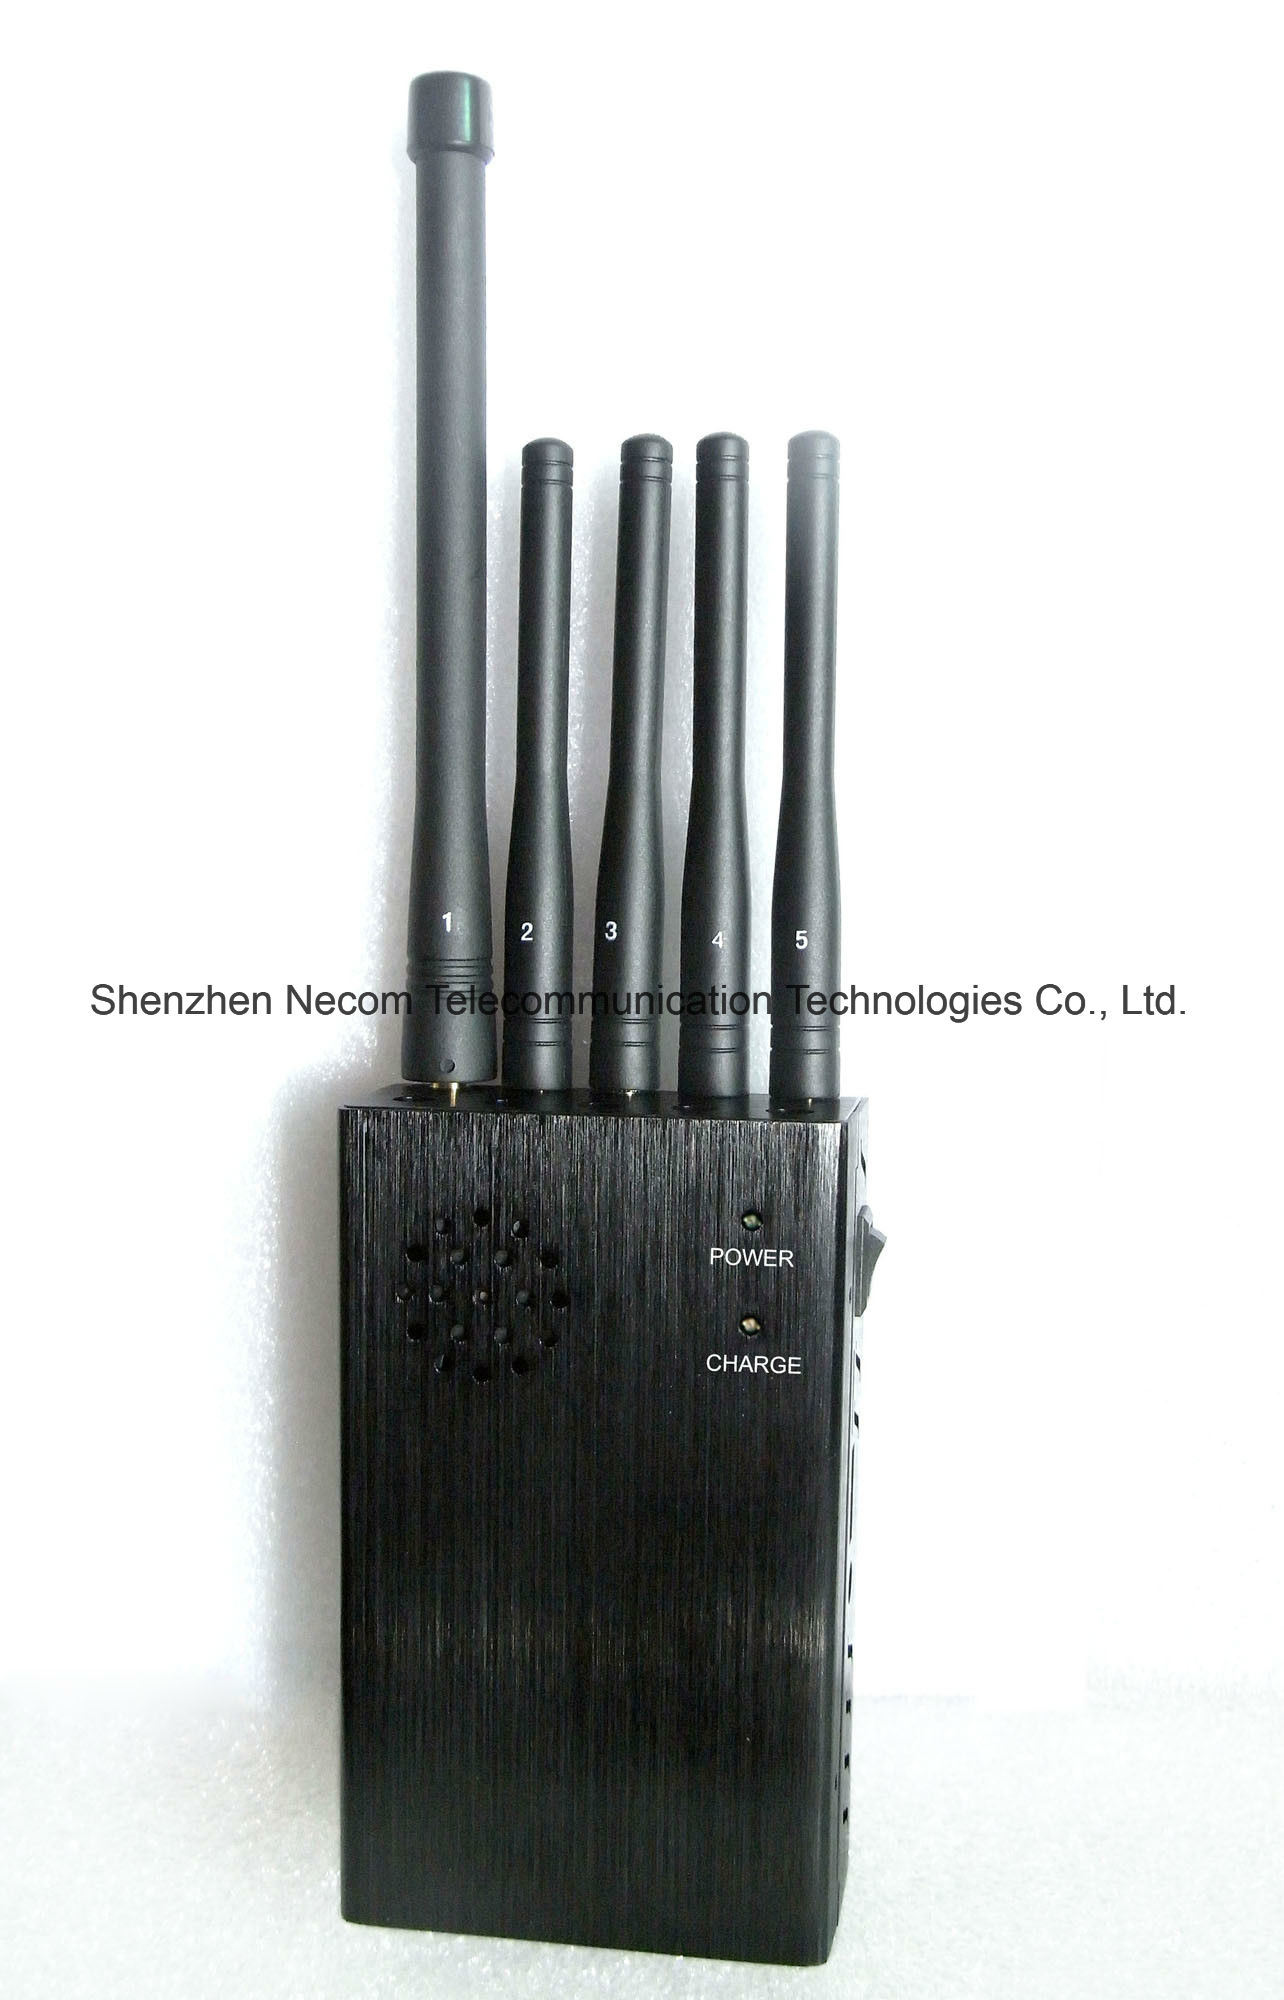 jammerjab kirby dream kardashian - China 5 Antennas Handheld WiFi GPS Cell Phone Jammer, 5-Band Portable WiFi Bluetooth Wireless Video Cell Phone Jammer - China Portable Cellphone Jammer, GSM Jammer